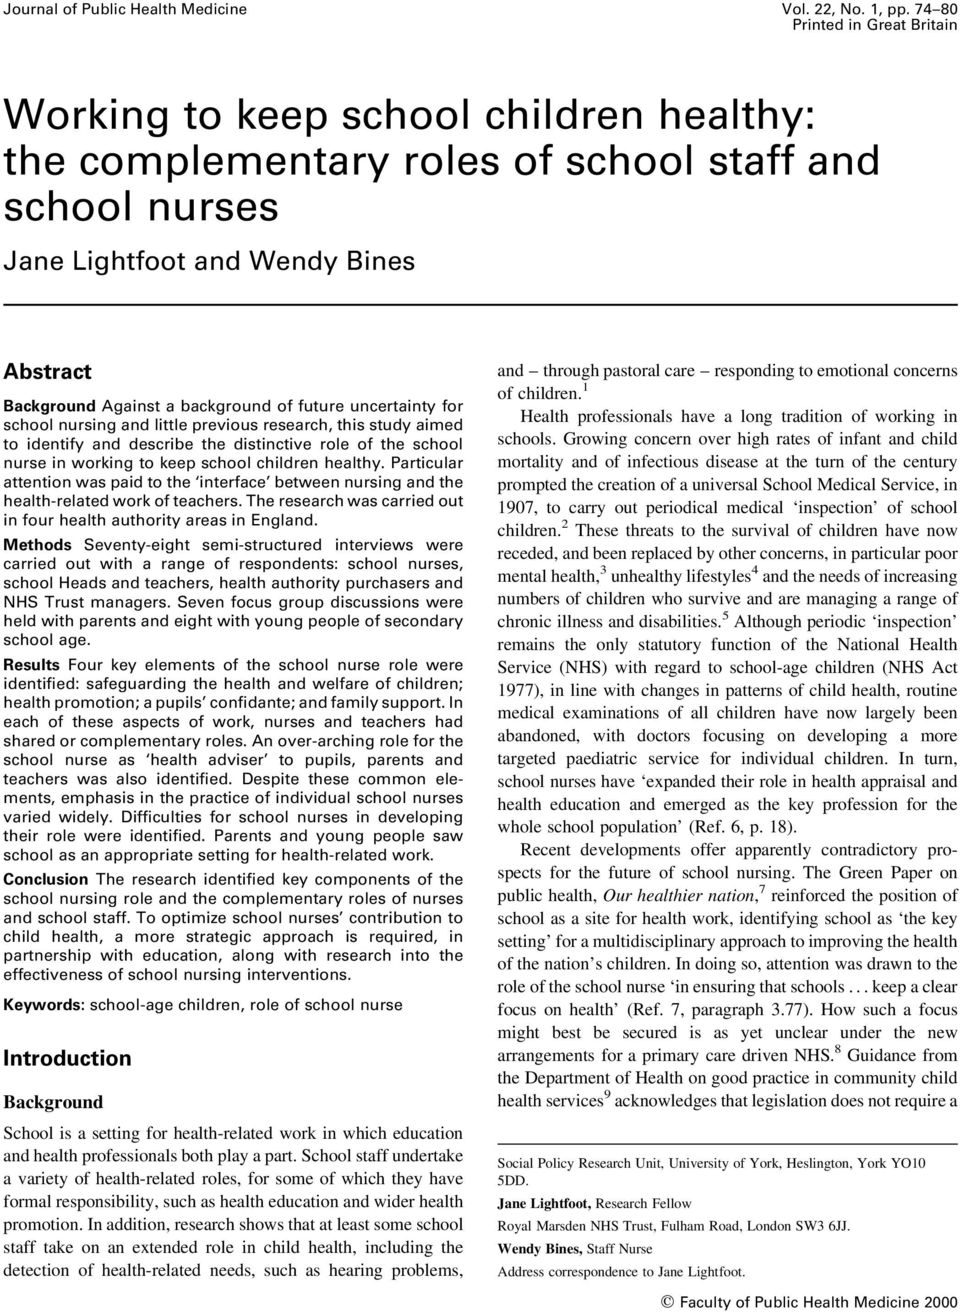 background of future uncertainty for school nursing and little previous research, this study aimed to identify and describe the distinctive role of the school nurse in working to keep school children